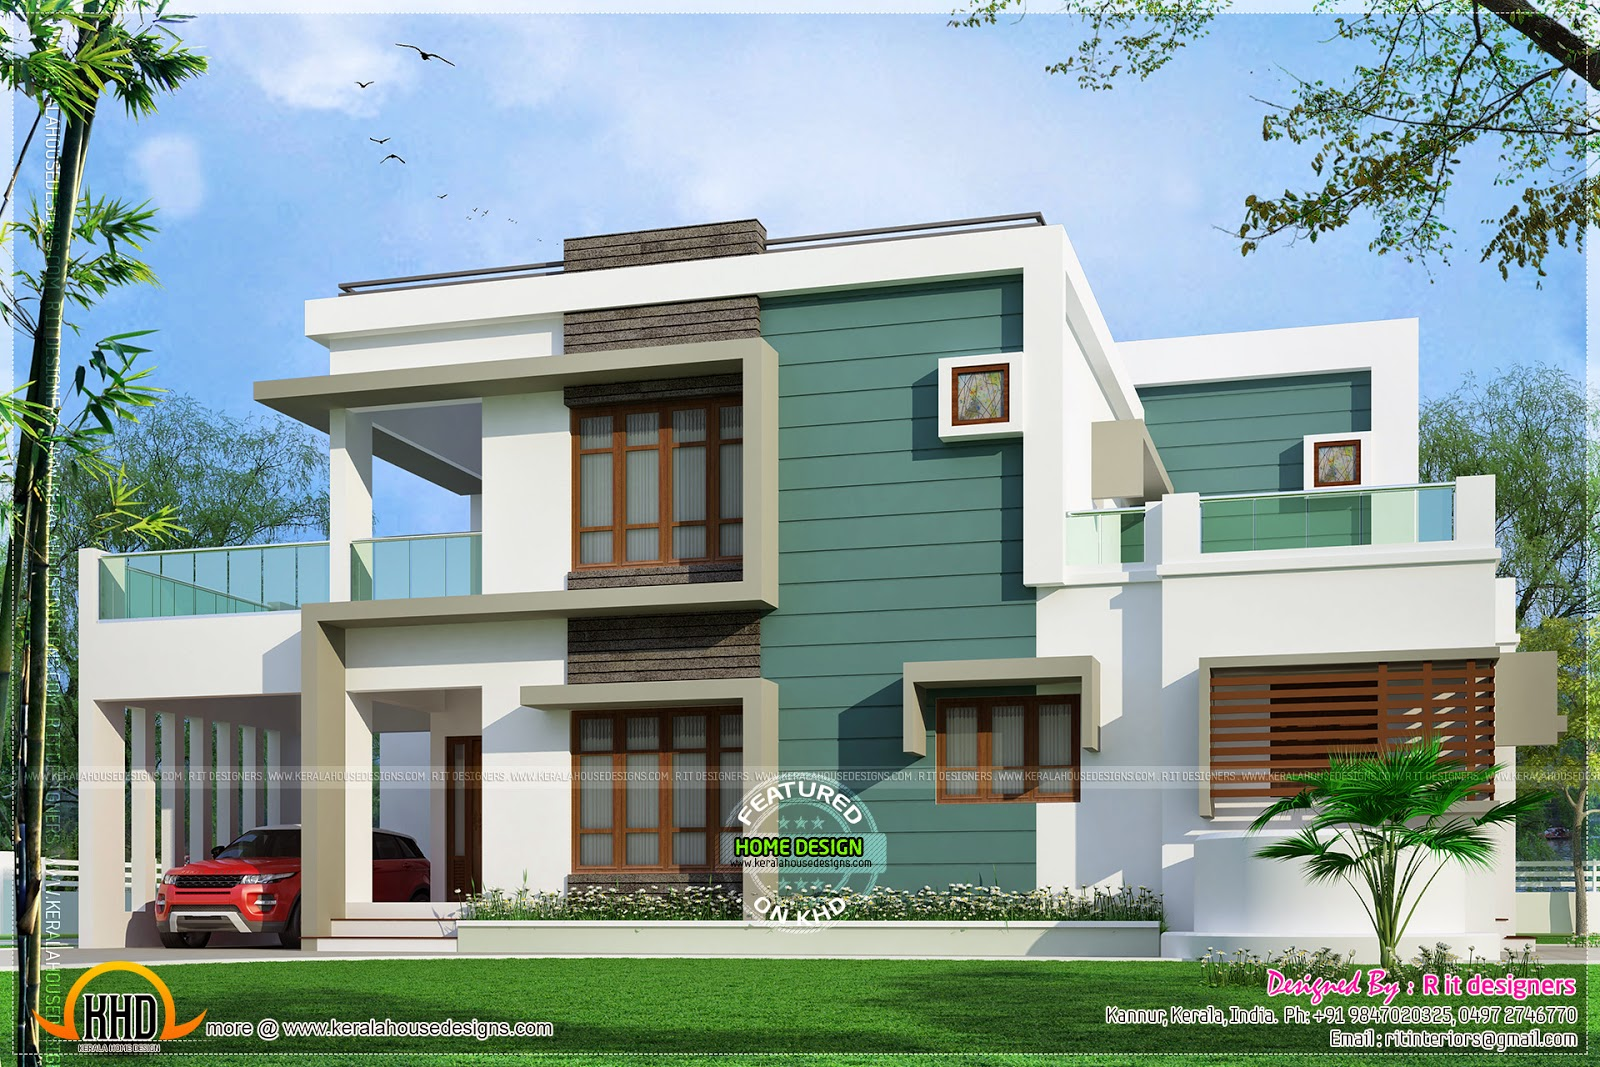 Kannur home design kerala home design and floor plans for Latest modern home designs